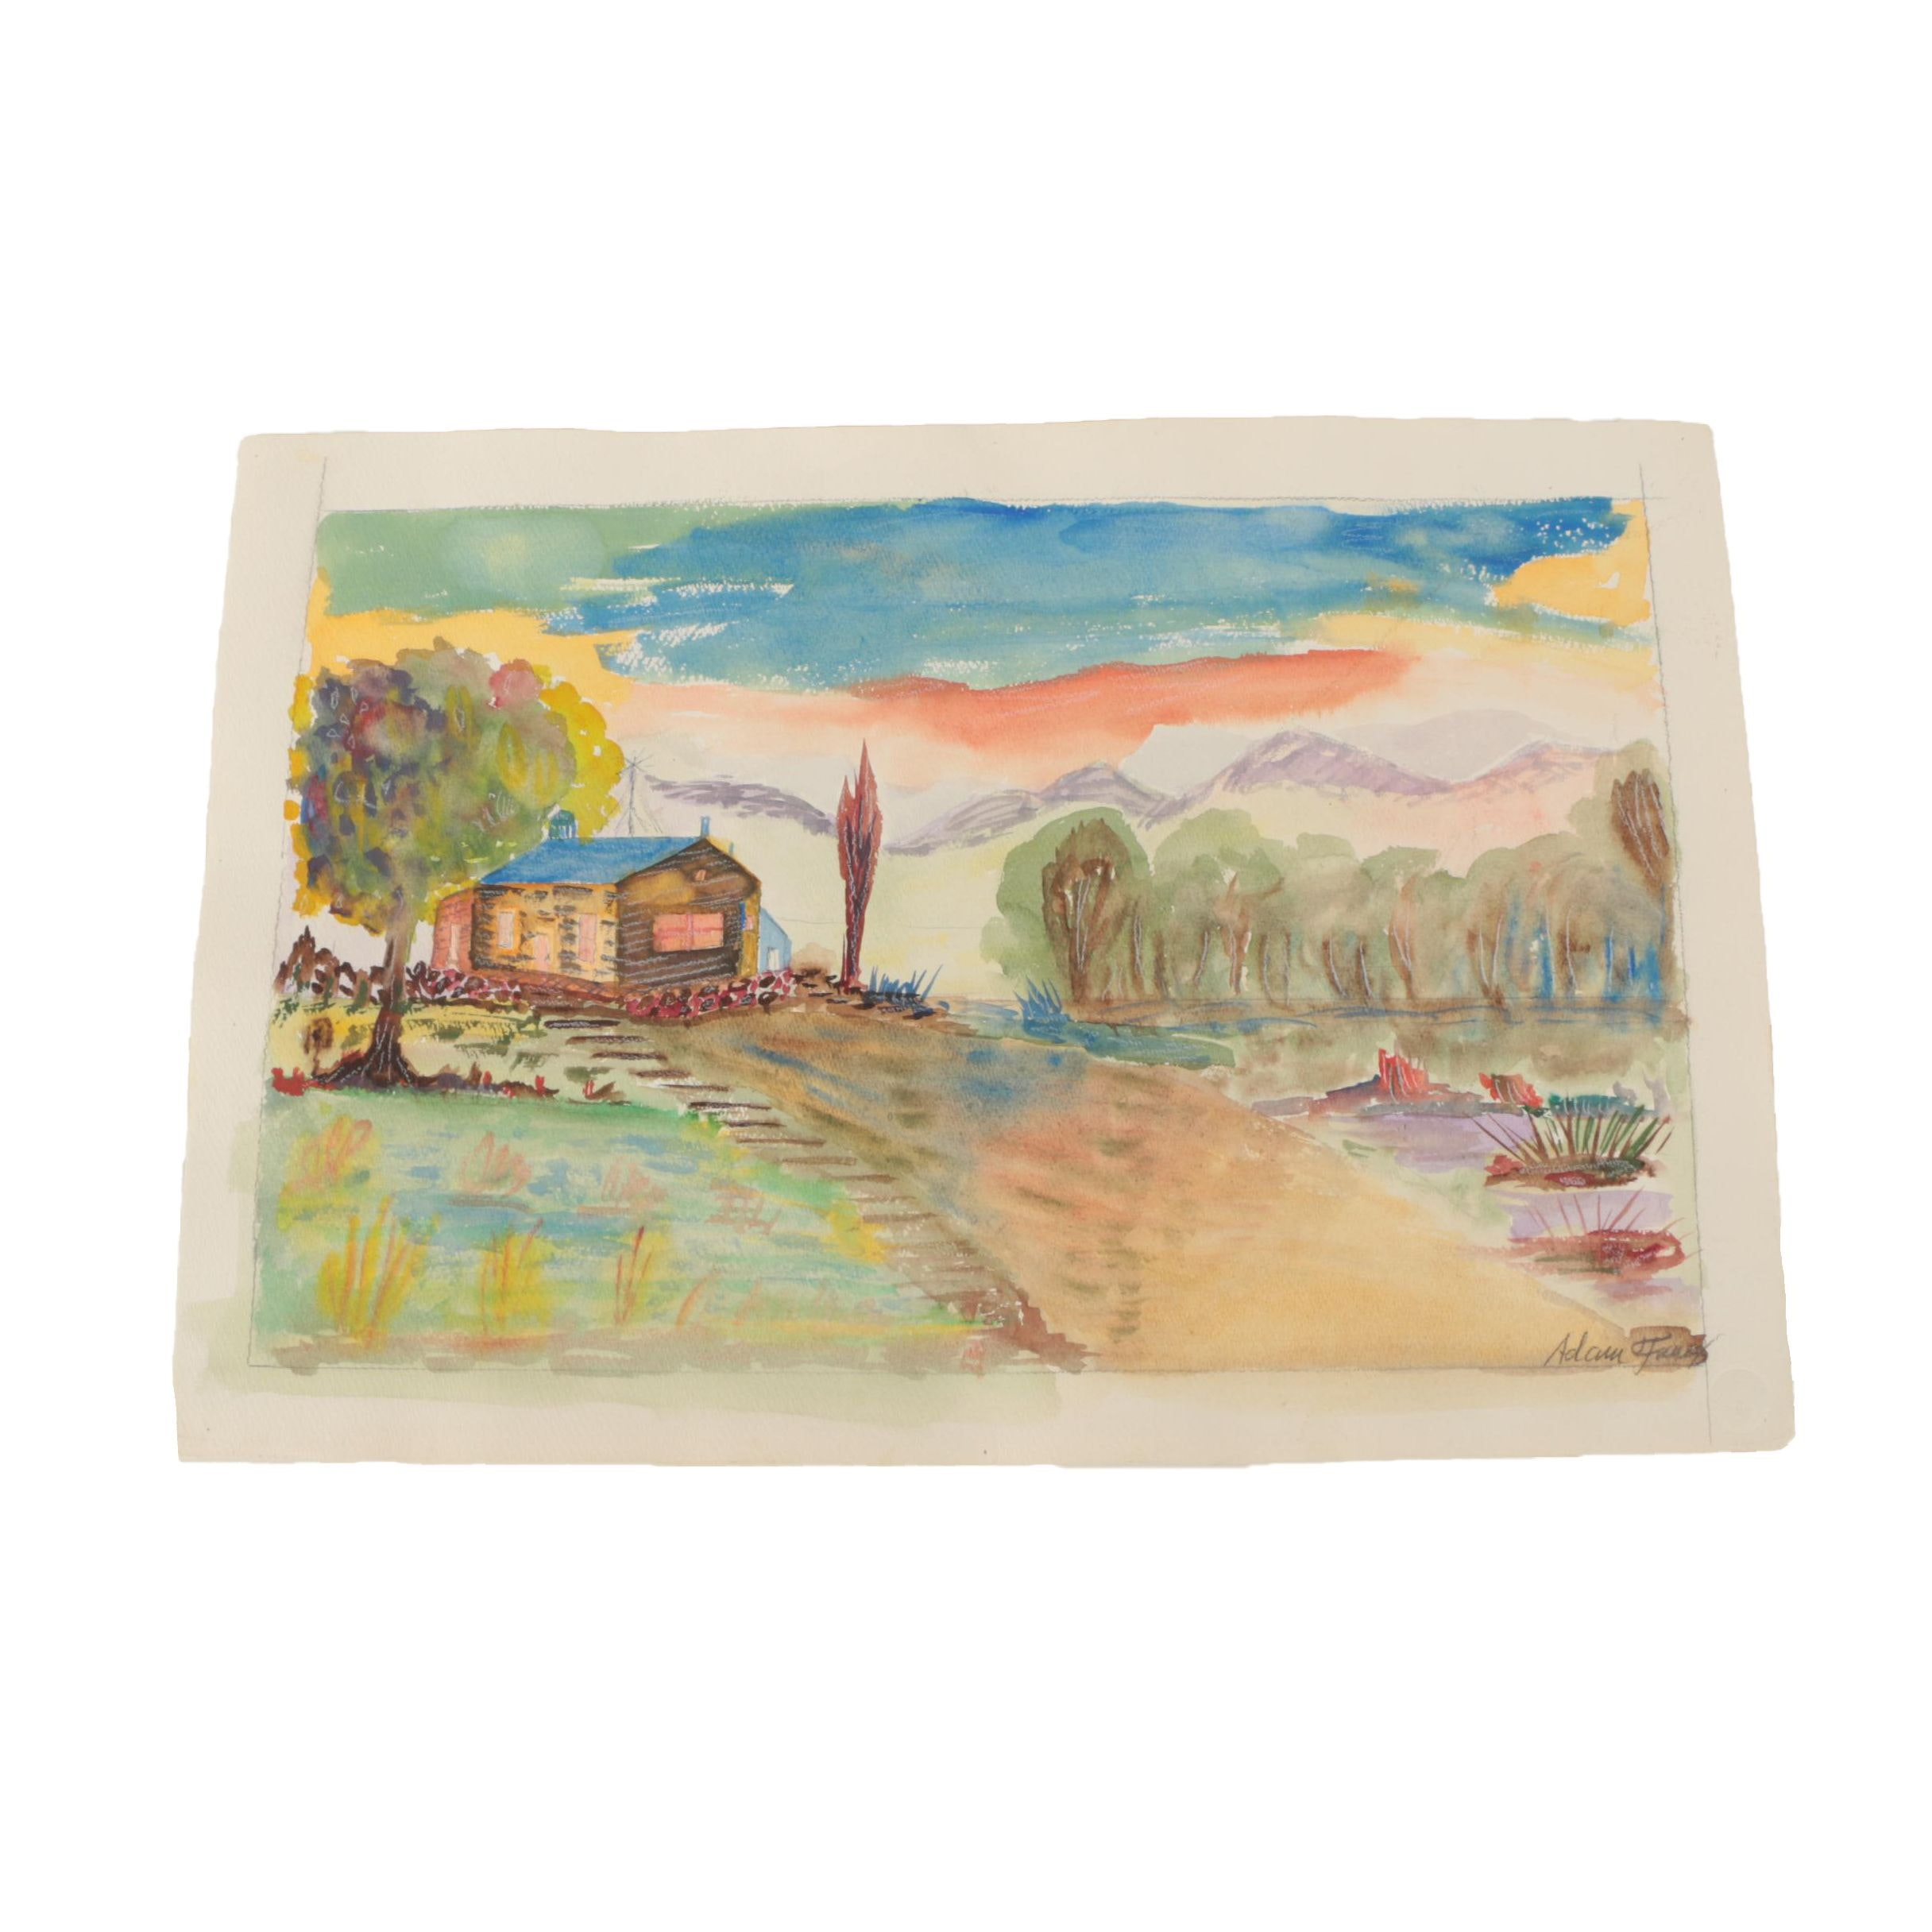 Watercolor Painting of Colorful Landscape